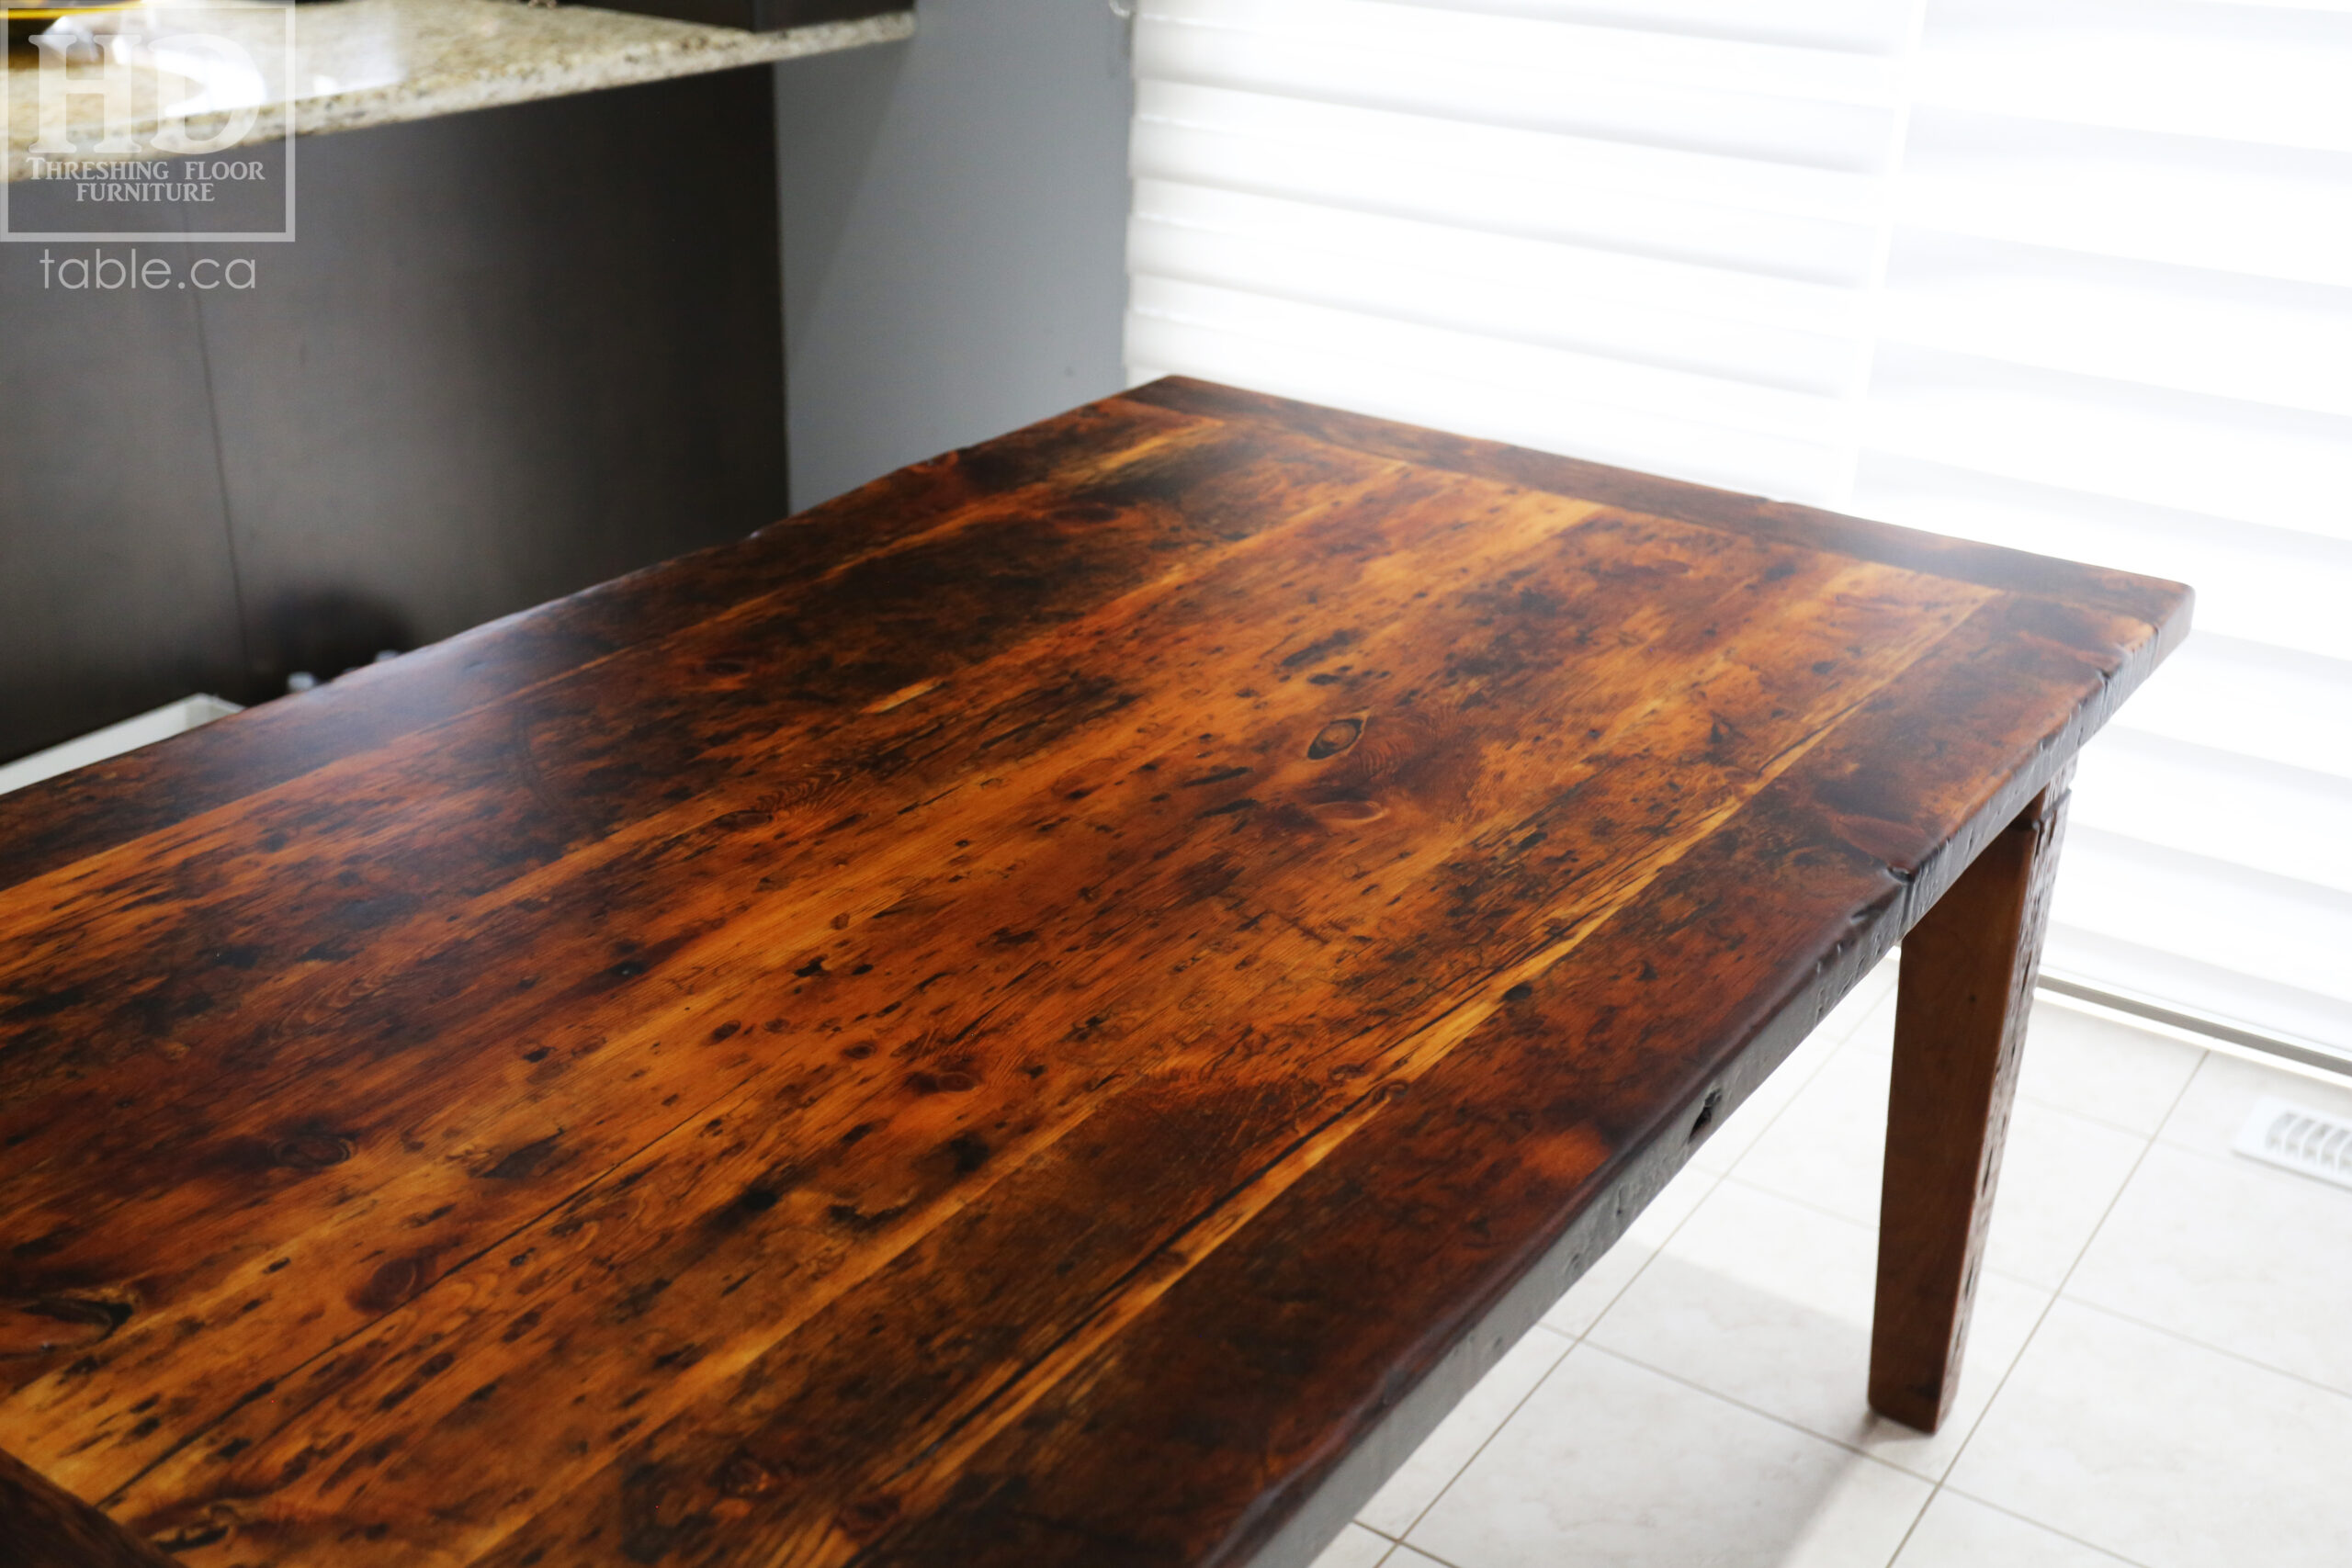 """Details: 66"""" Reclaimed Wood Table we made for a Maple, ON home - 37 1/2"""" wide - Harvest Base - Tapered with a Notch Windbrace Beam Legs - Old Growth Pine Threshing Floor Construction - Original edges & distressing maintained - Premium epoxy + satin polyurethane finish - One - 20"""" leaf - www.table.ca"""